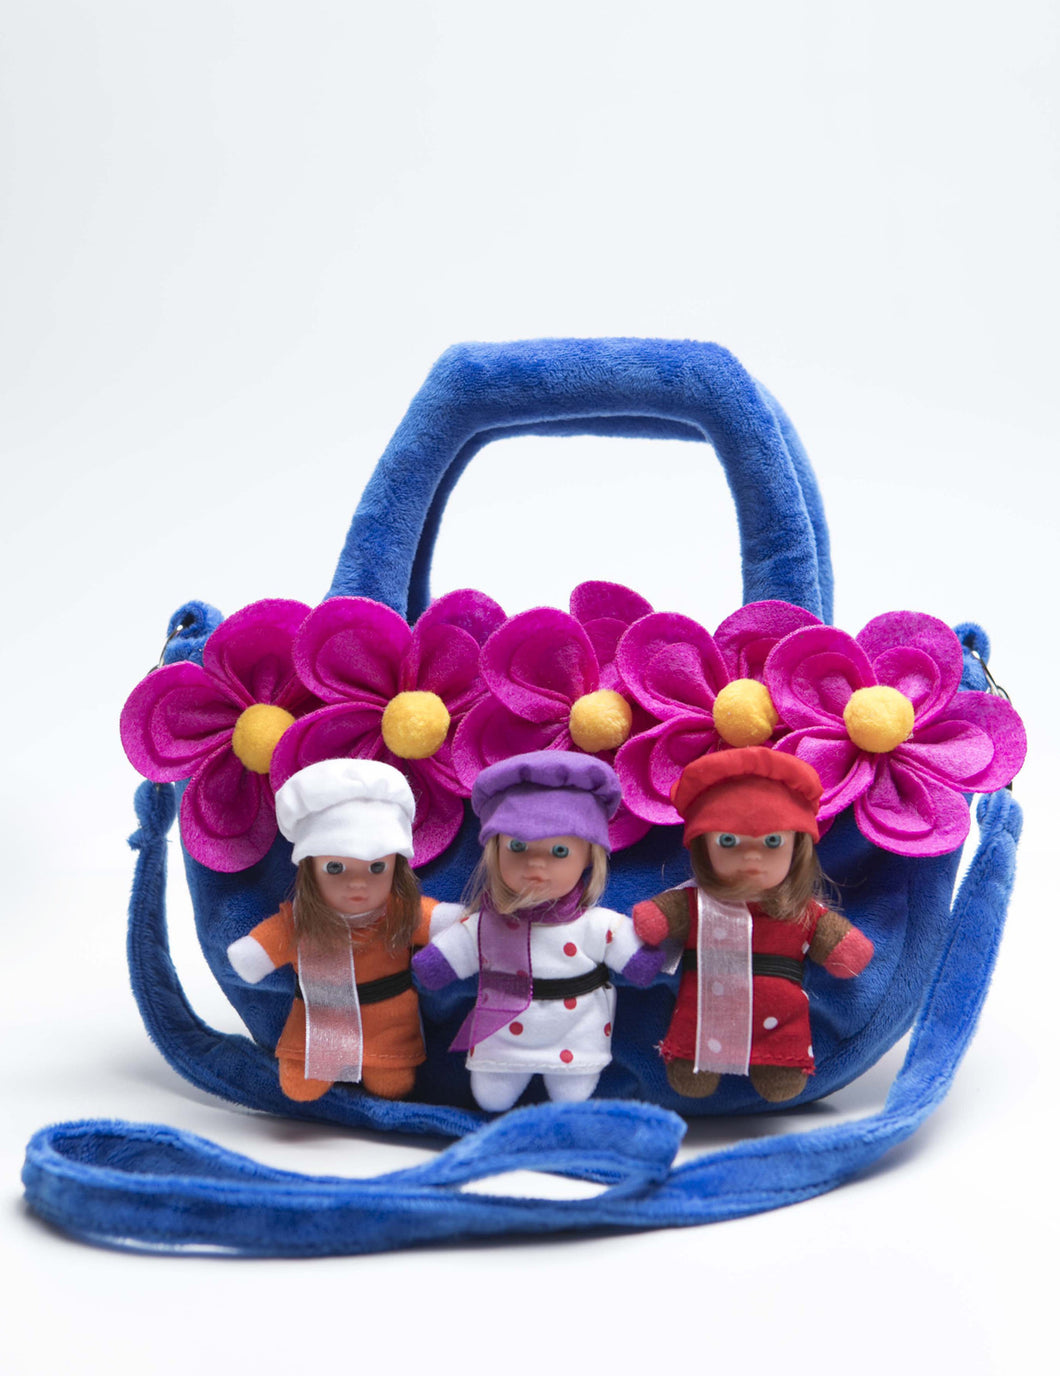 Stork Babies - Flower Purse (HOLDS DOLLS) -children's purse with strap - Stork Babies - beautiful handcrafted dolls